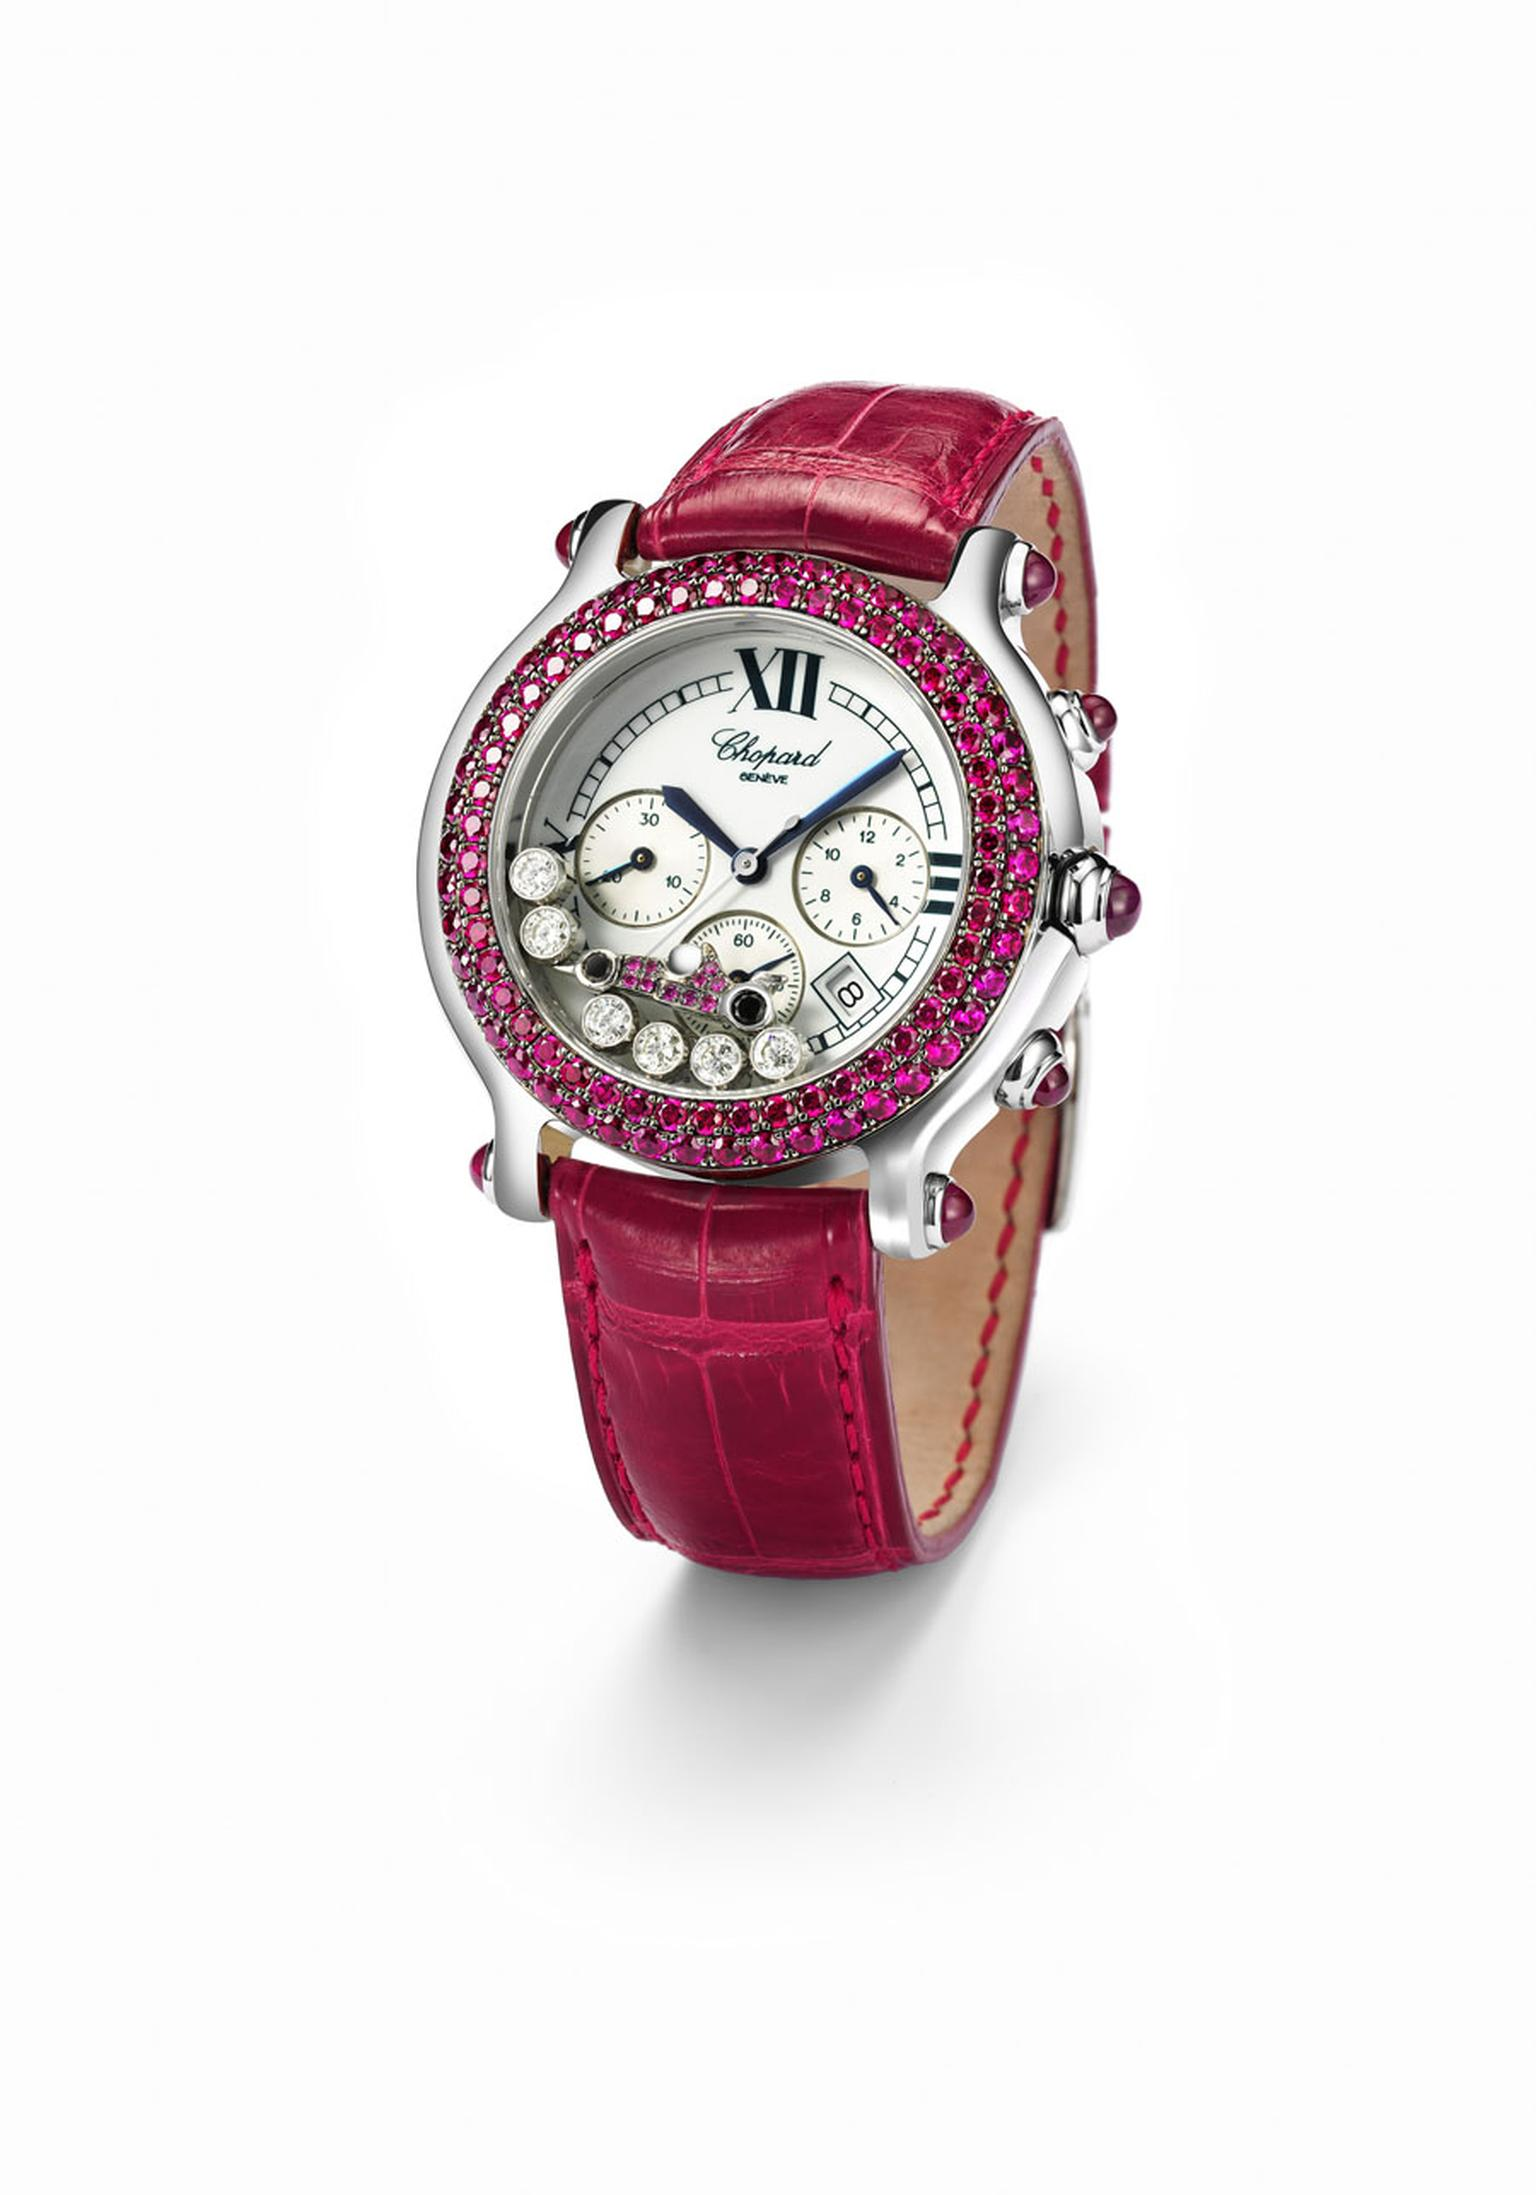 ChopardHappySport10.jpg